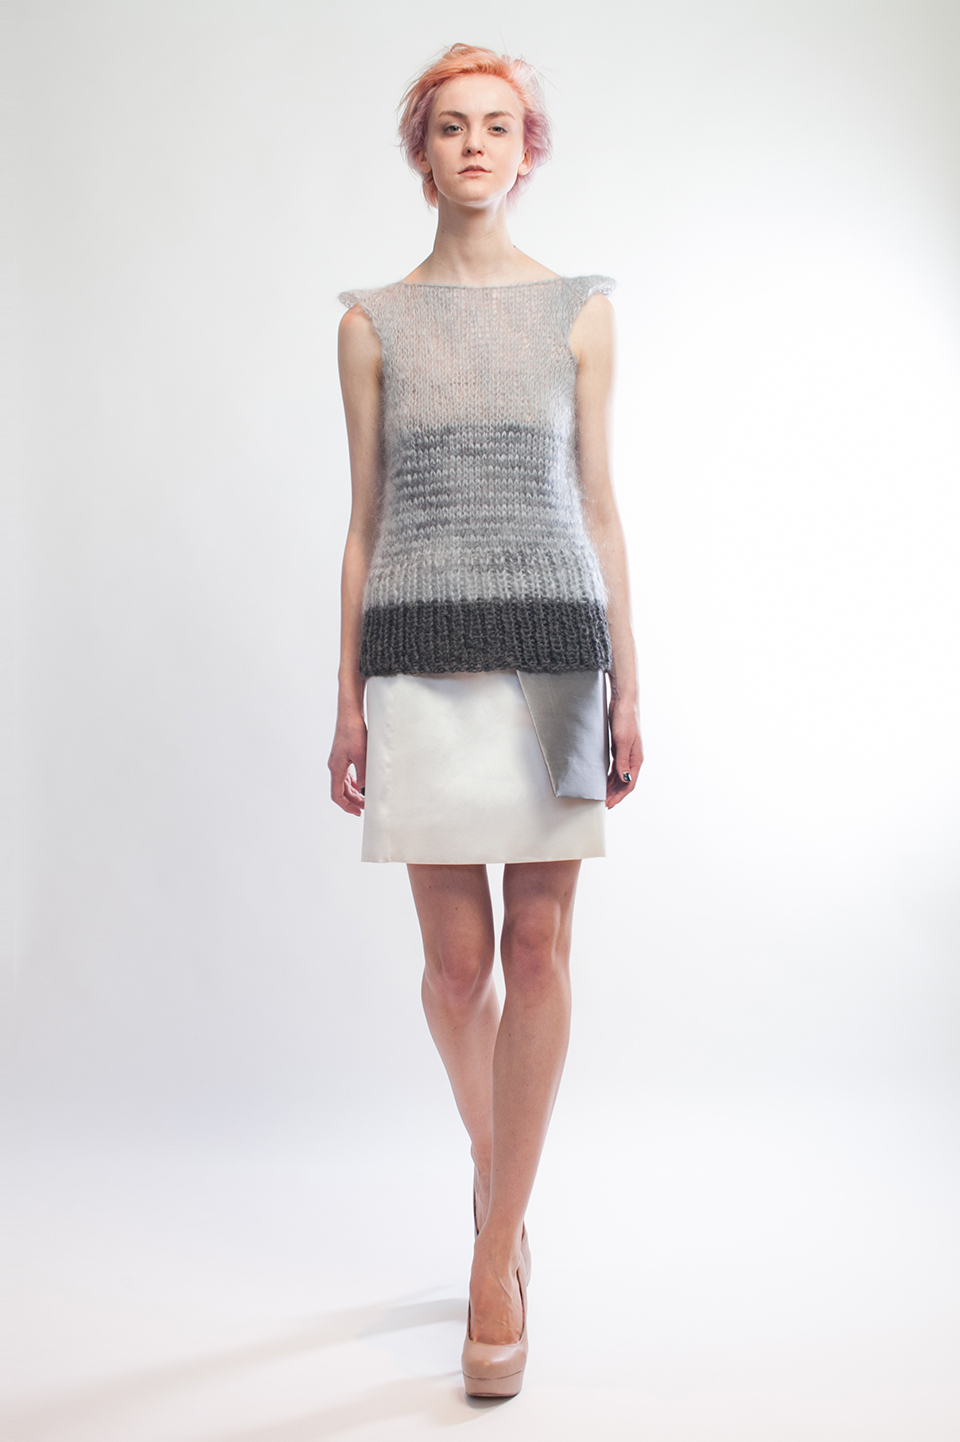 Claire Andrew Designer Fashion AW14 3 - Striped knit vest with layered sport luxe silk and wool skirt